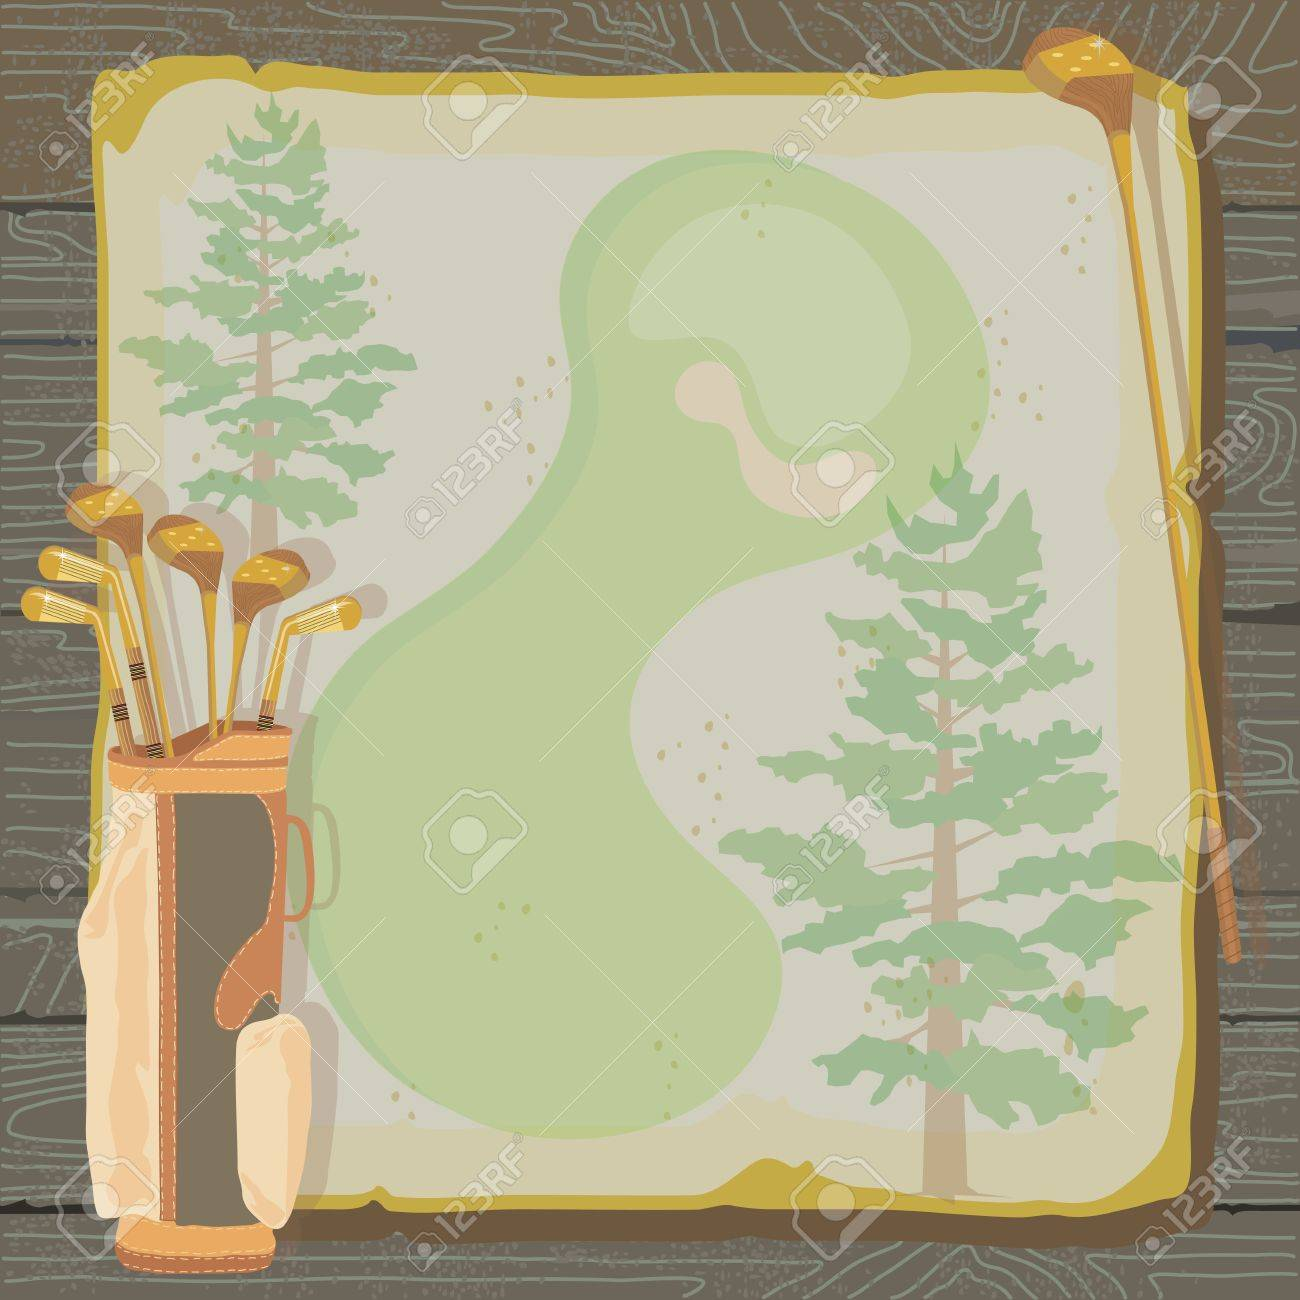 Rustic golf party or tournament invitation with a vintage aged feel  Golf bags with golf clubs on grungy vintage paper with faded pine trees, set against a wood background Stock Vector - 12829146